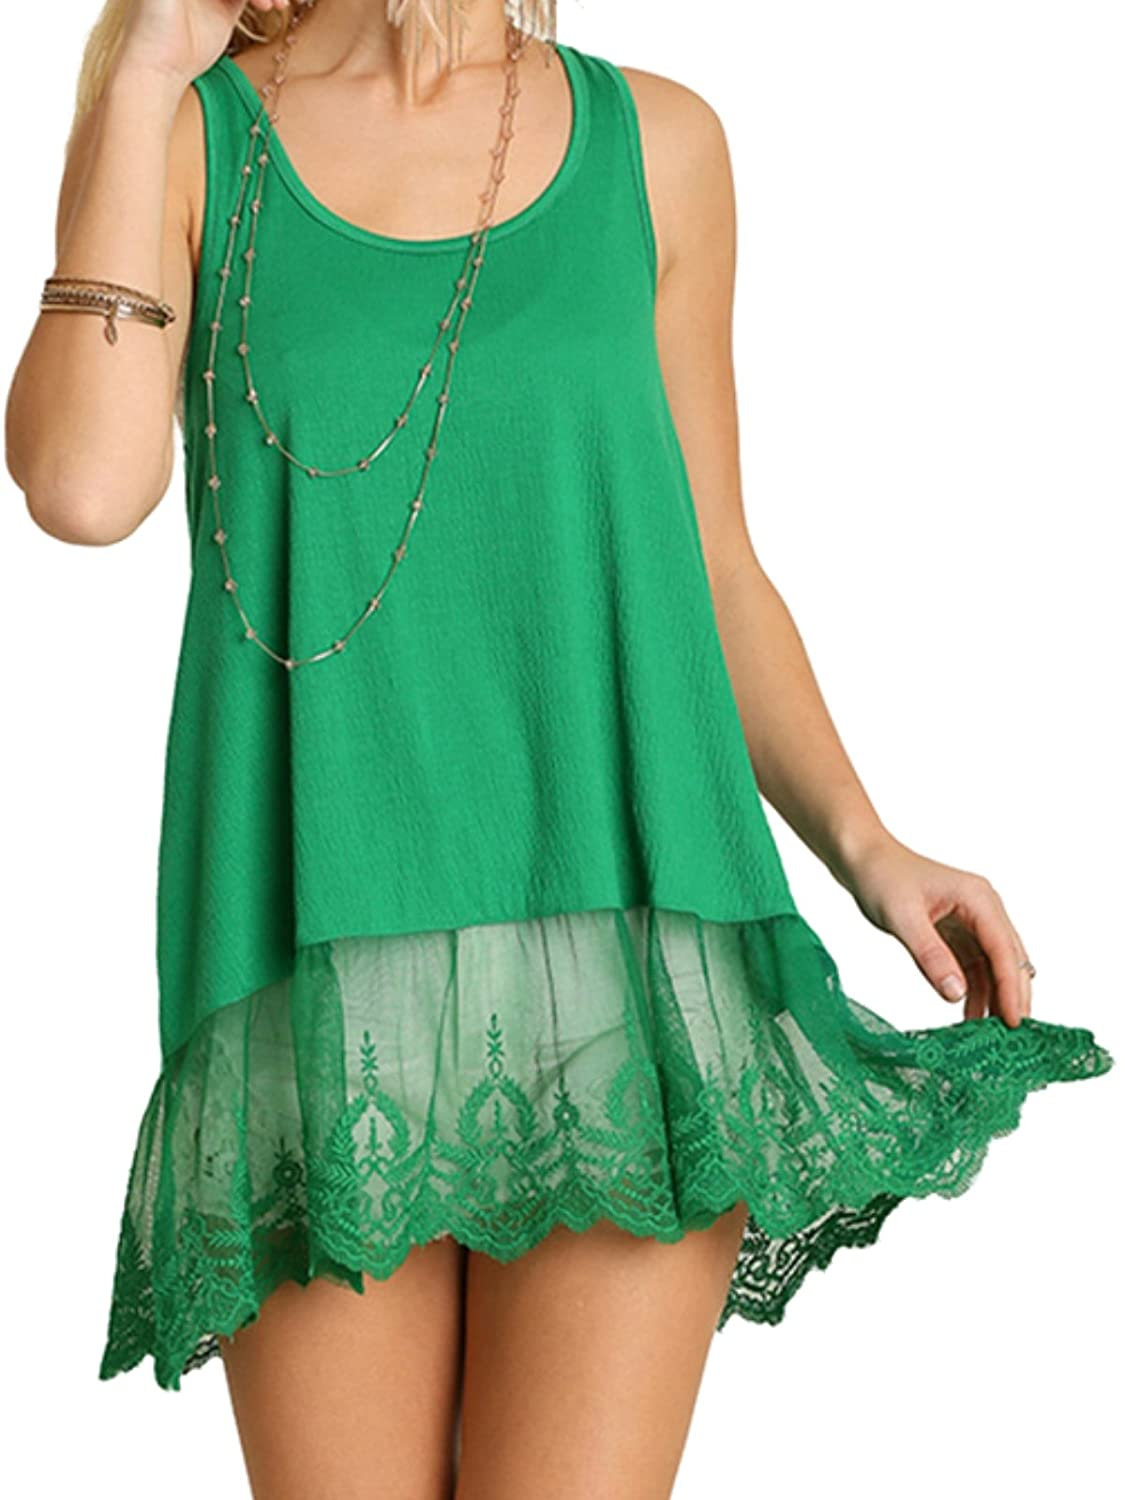 Green Umgee USA Women's Sleeveless Lace Tank Vintage Boho